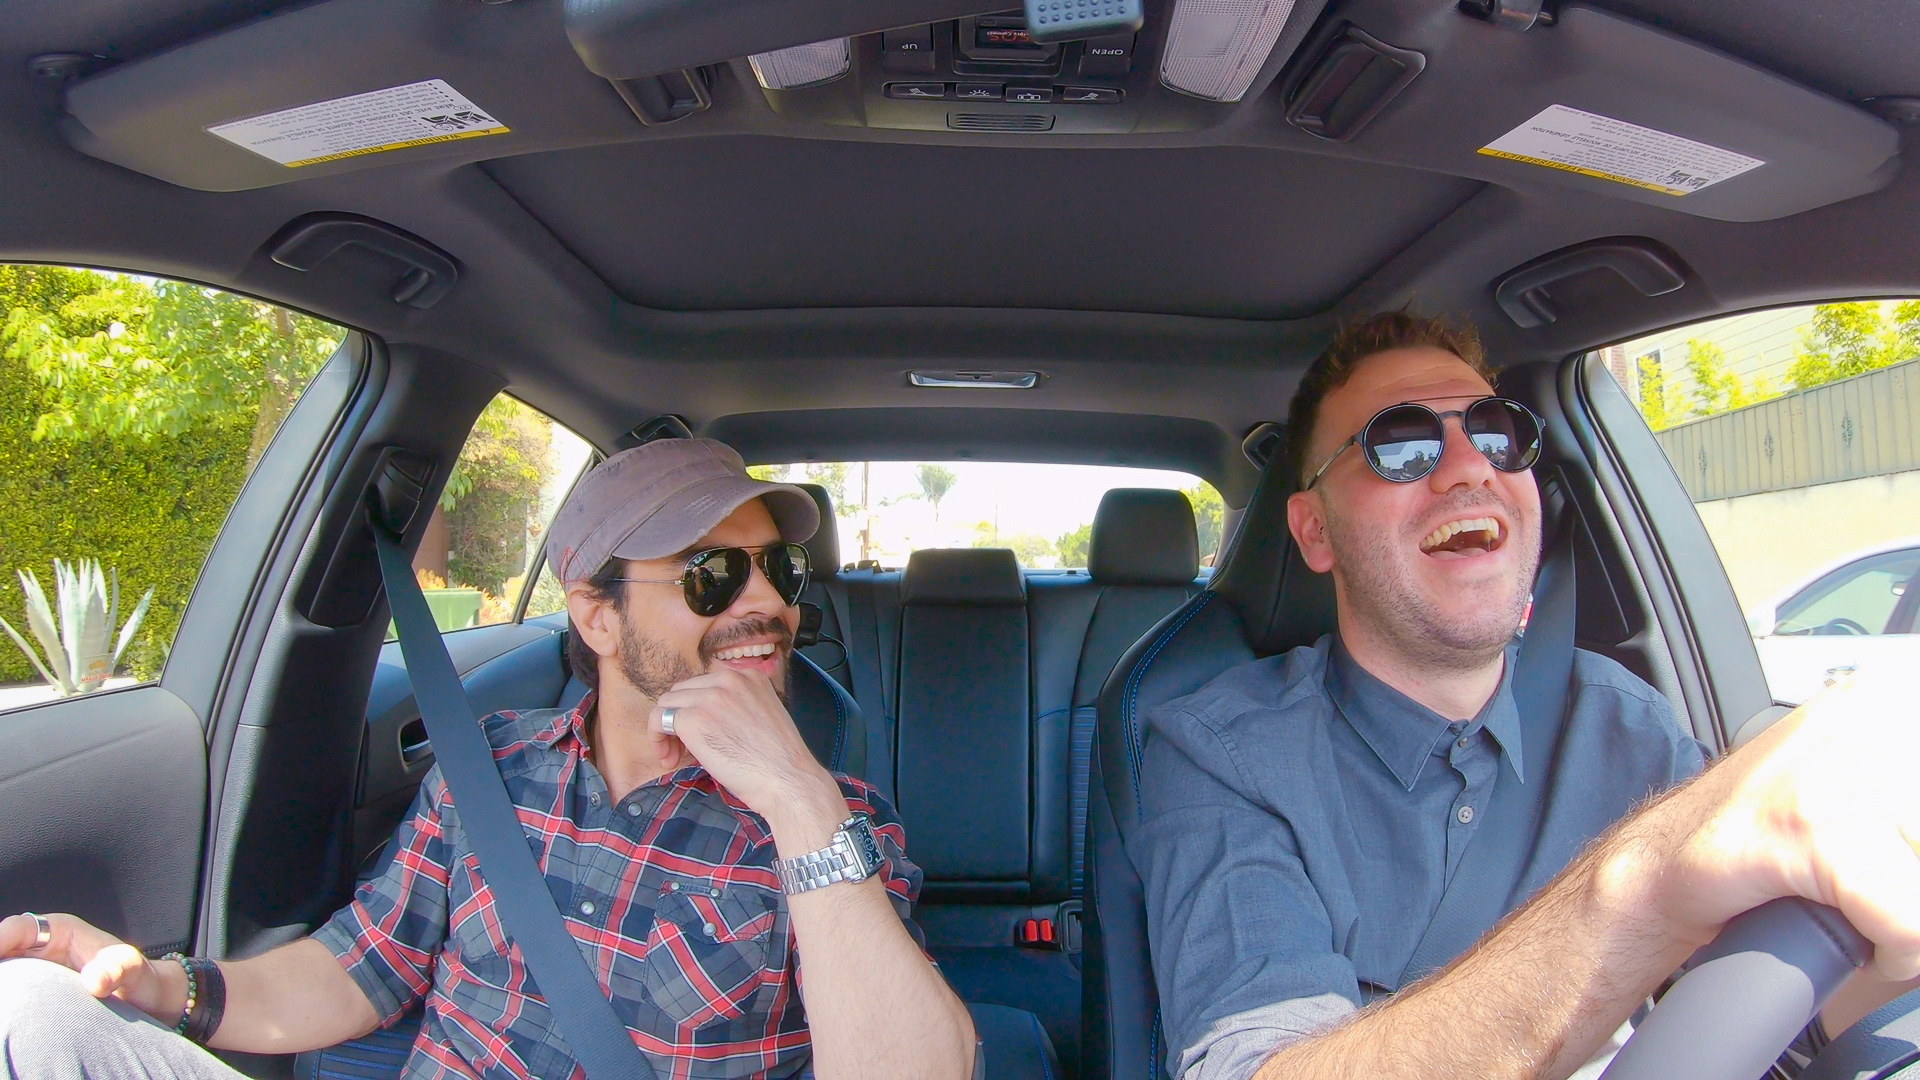 Toyota Corolla & Director Edgar Nito Team Up to Give Advice to Emerging Latino Filmmakers